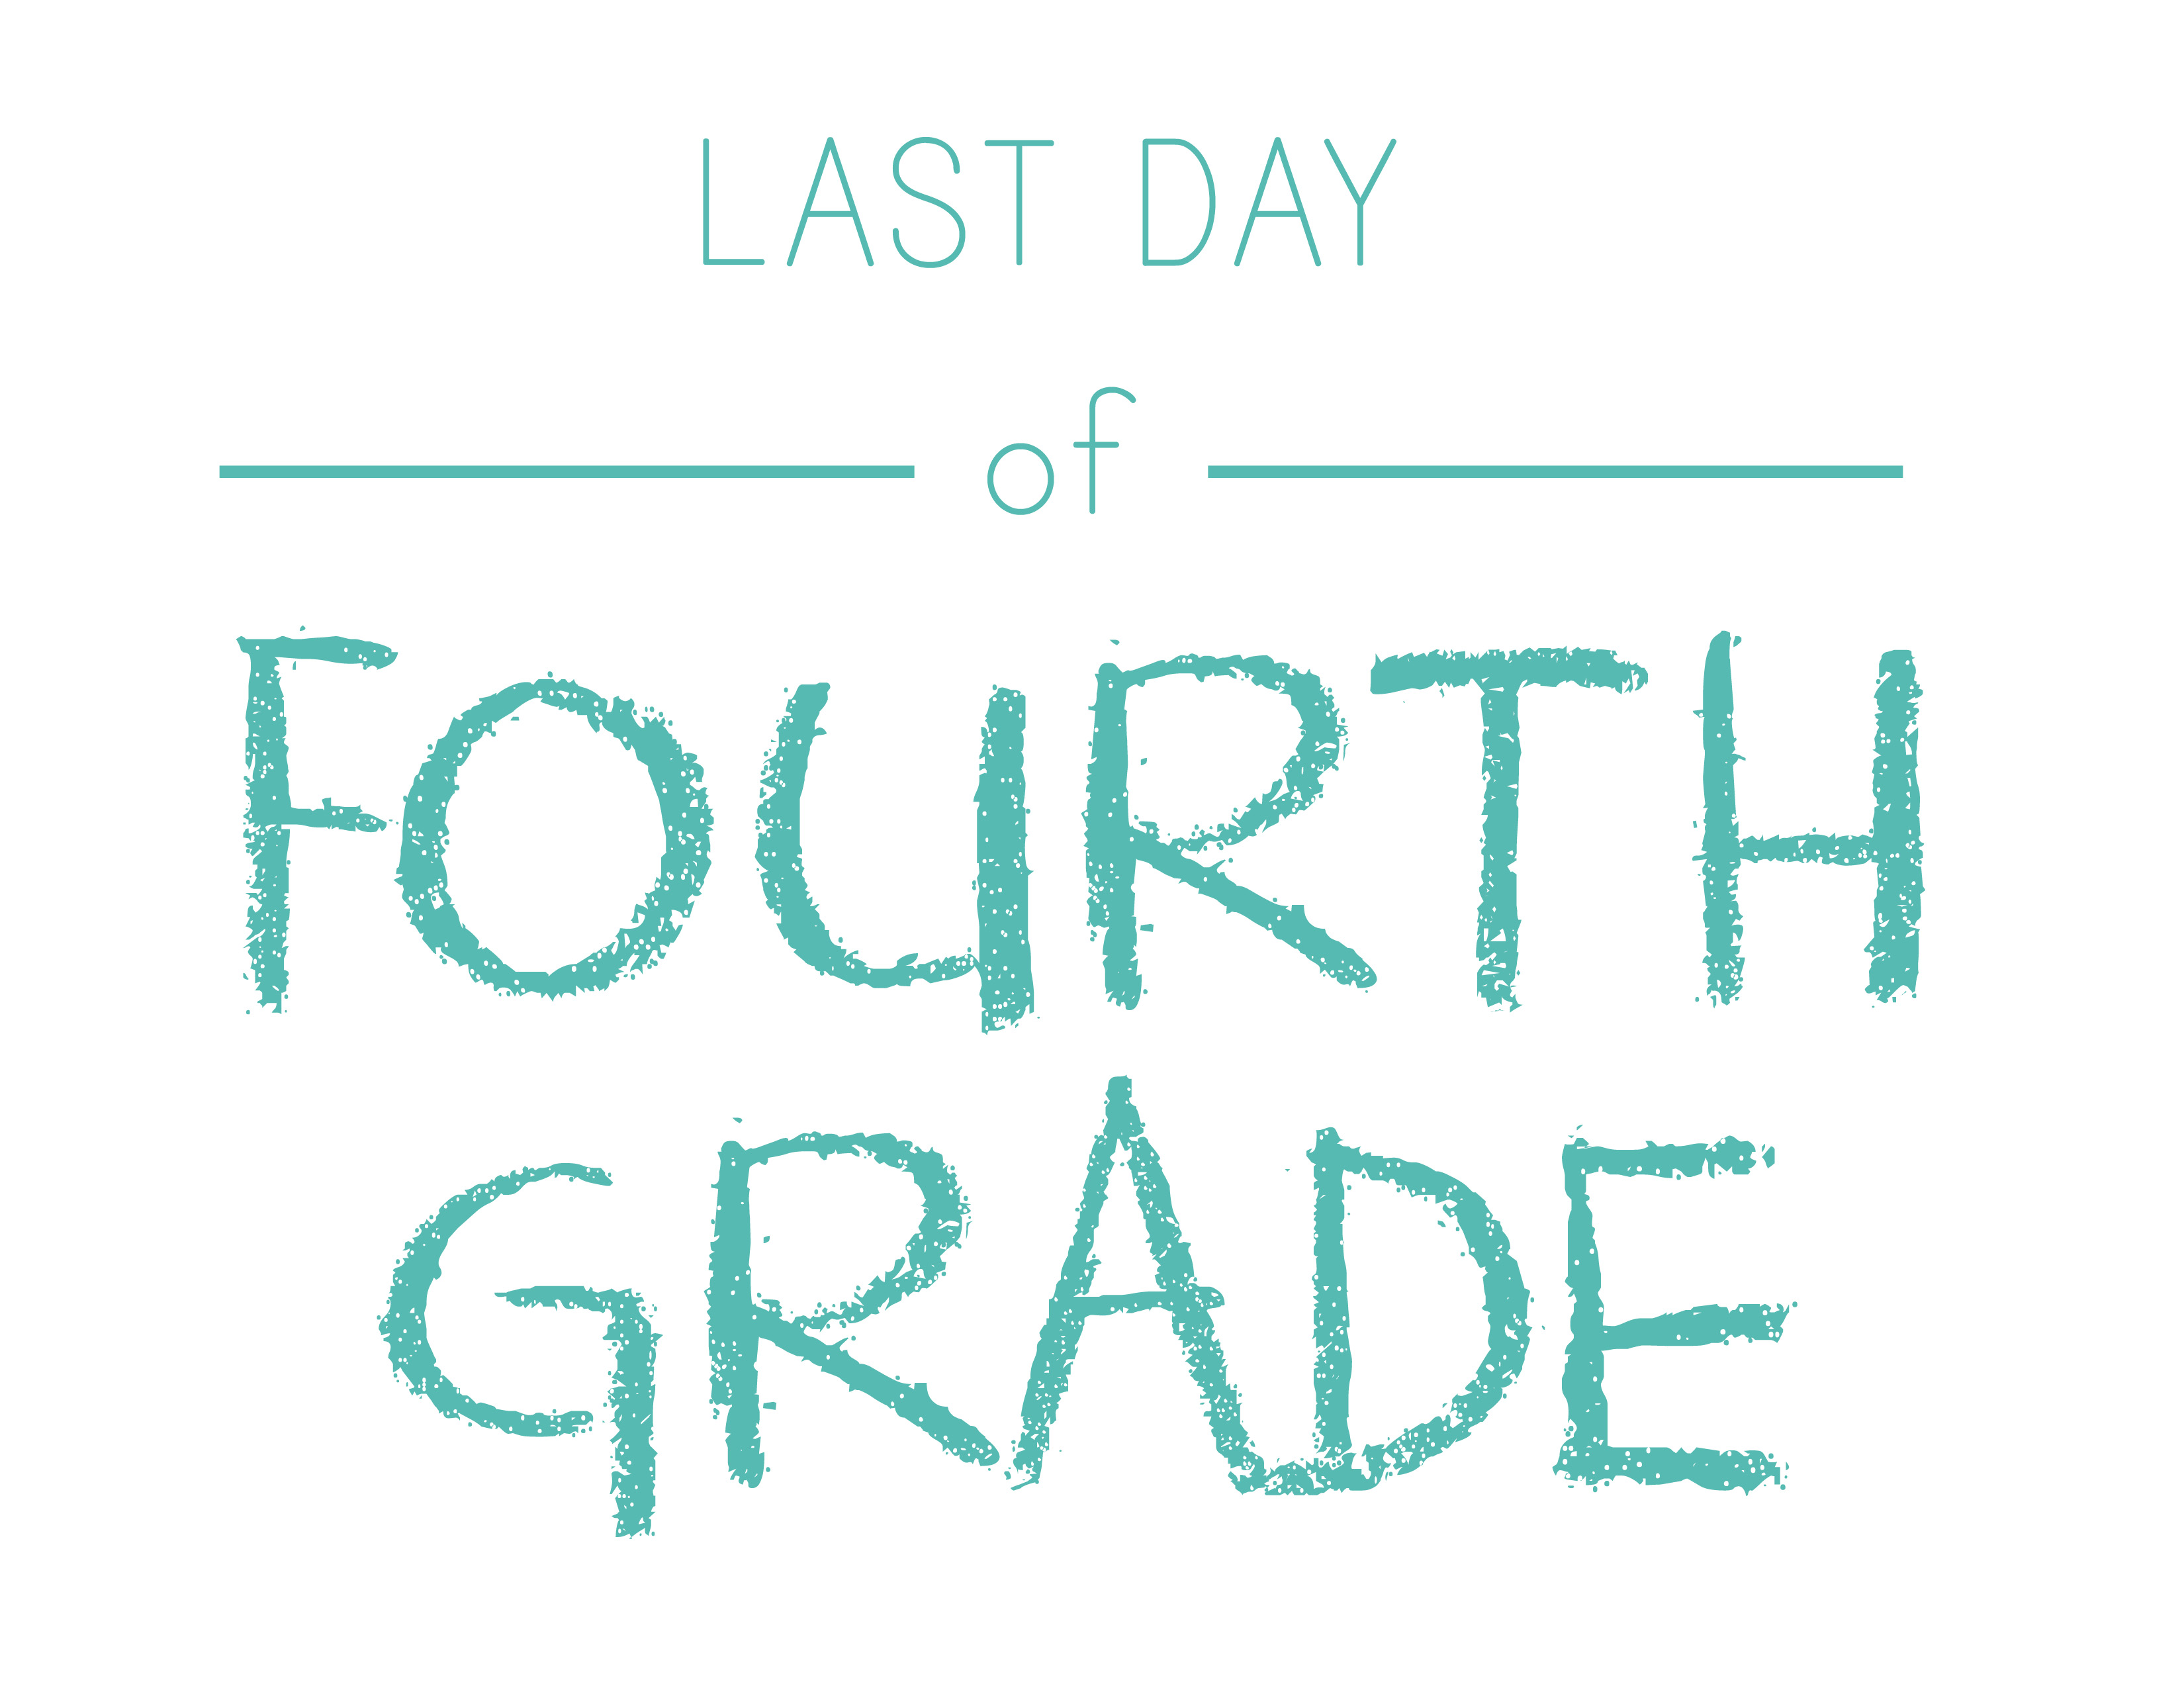 printable first day of school signs (and bonus photo ideas)